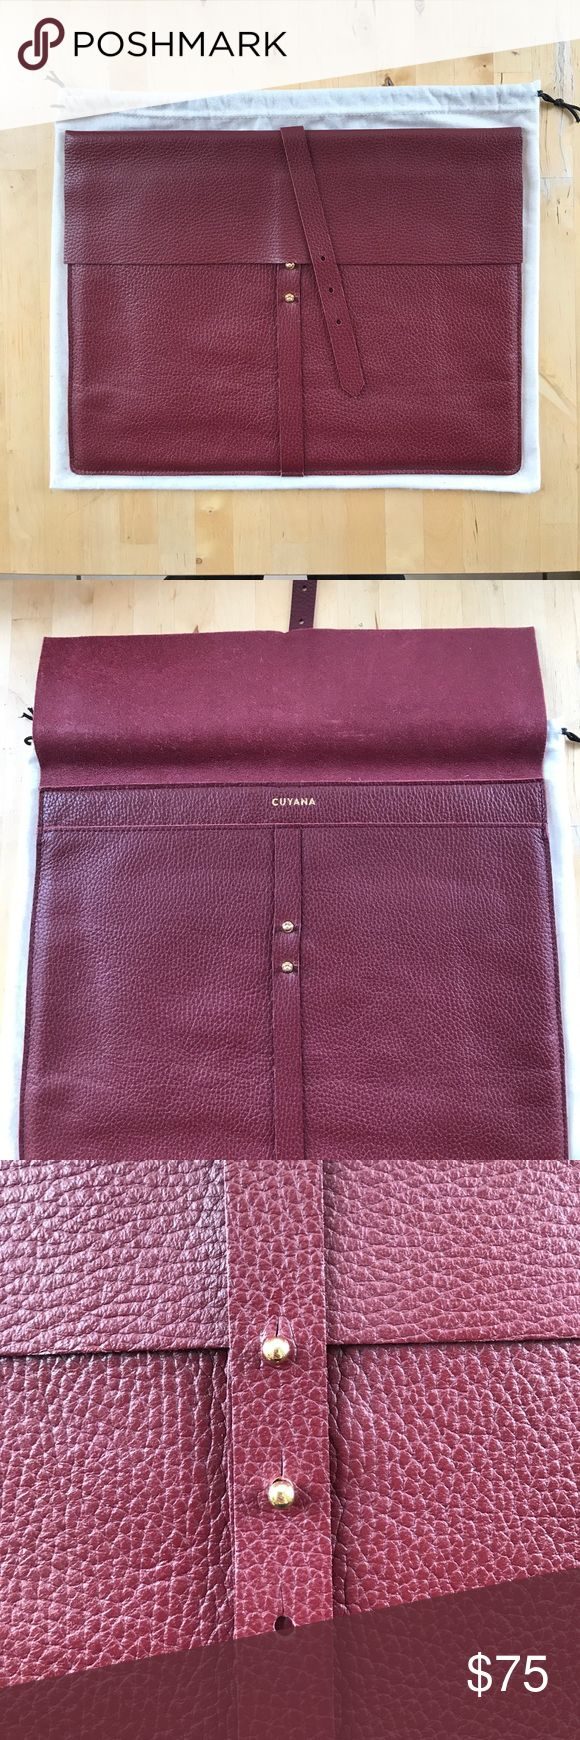 Cuyana Leather Laptop Pouch Beautiful Cuyana lapto…